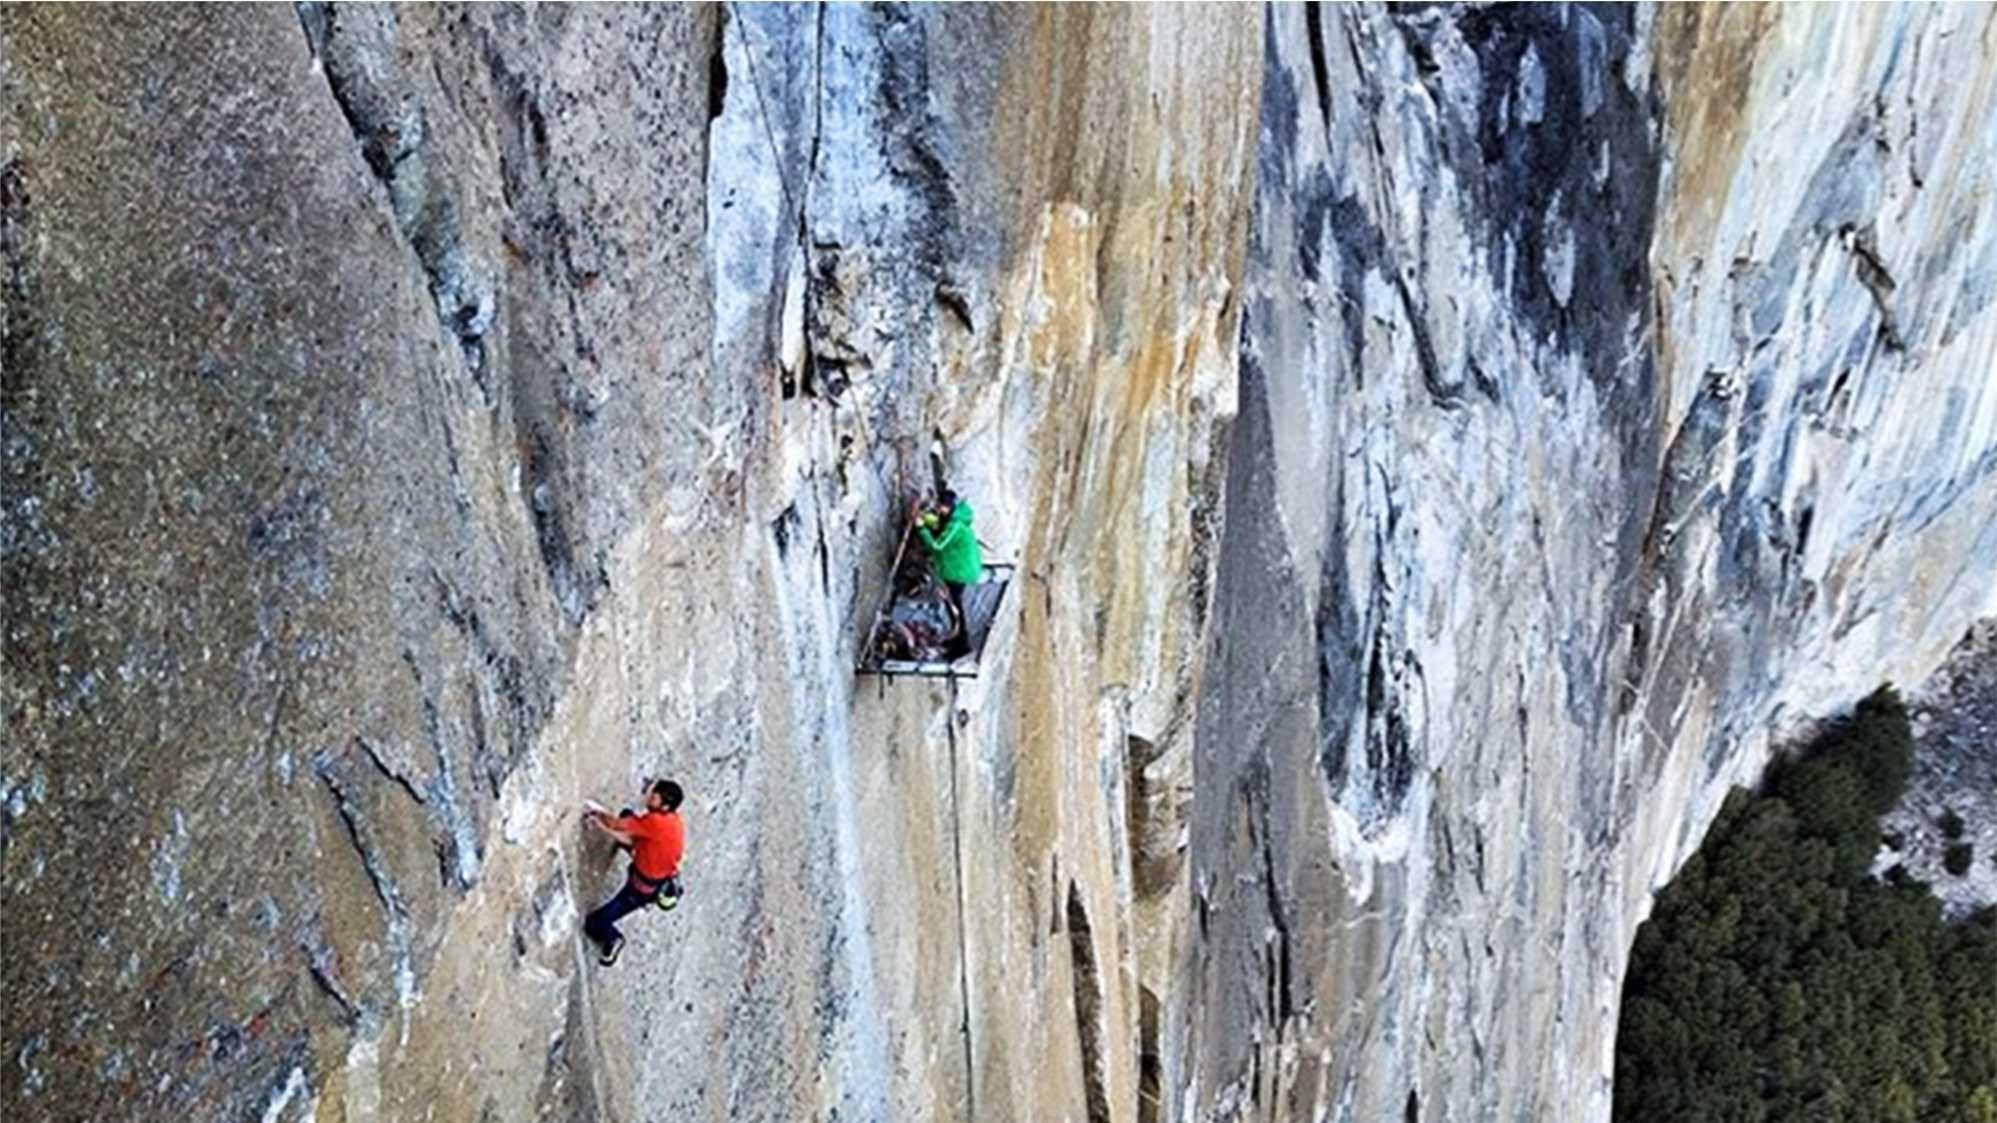 Kevin Jorgeson, left, and Tommy Caldwell, right, are climbing El Capitan's Dawn Wall.